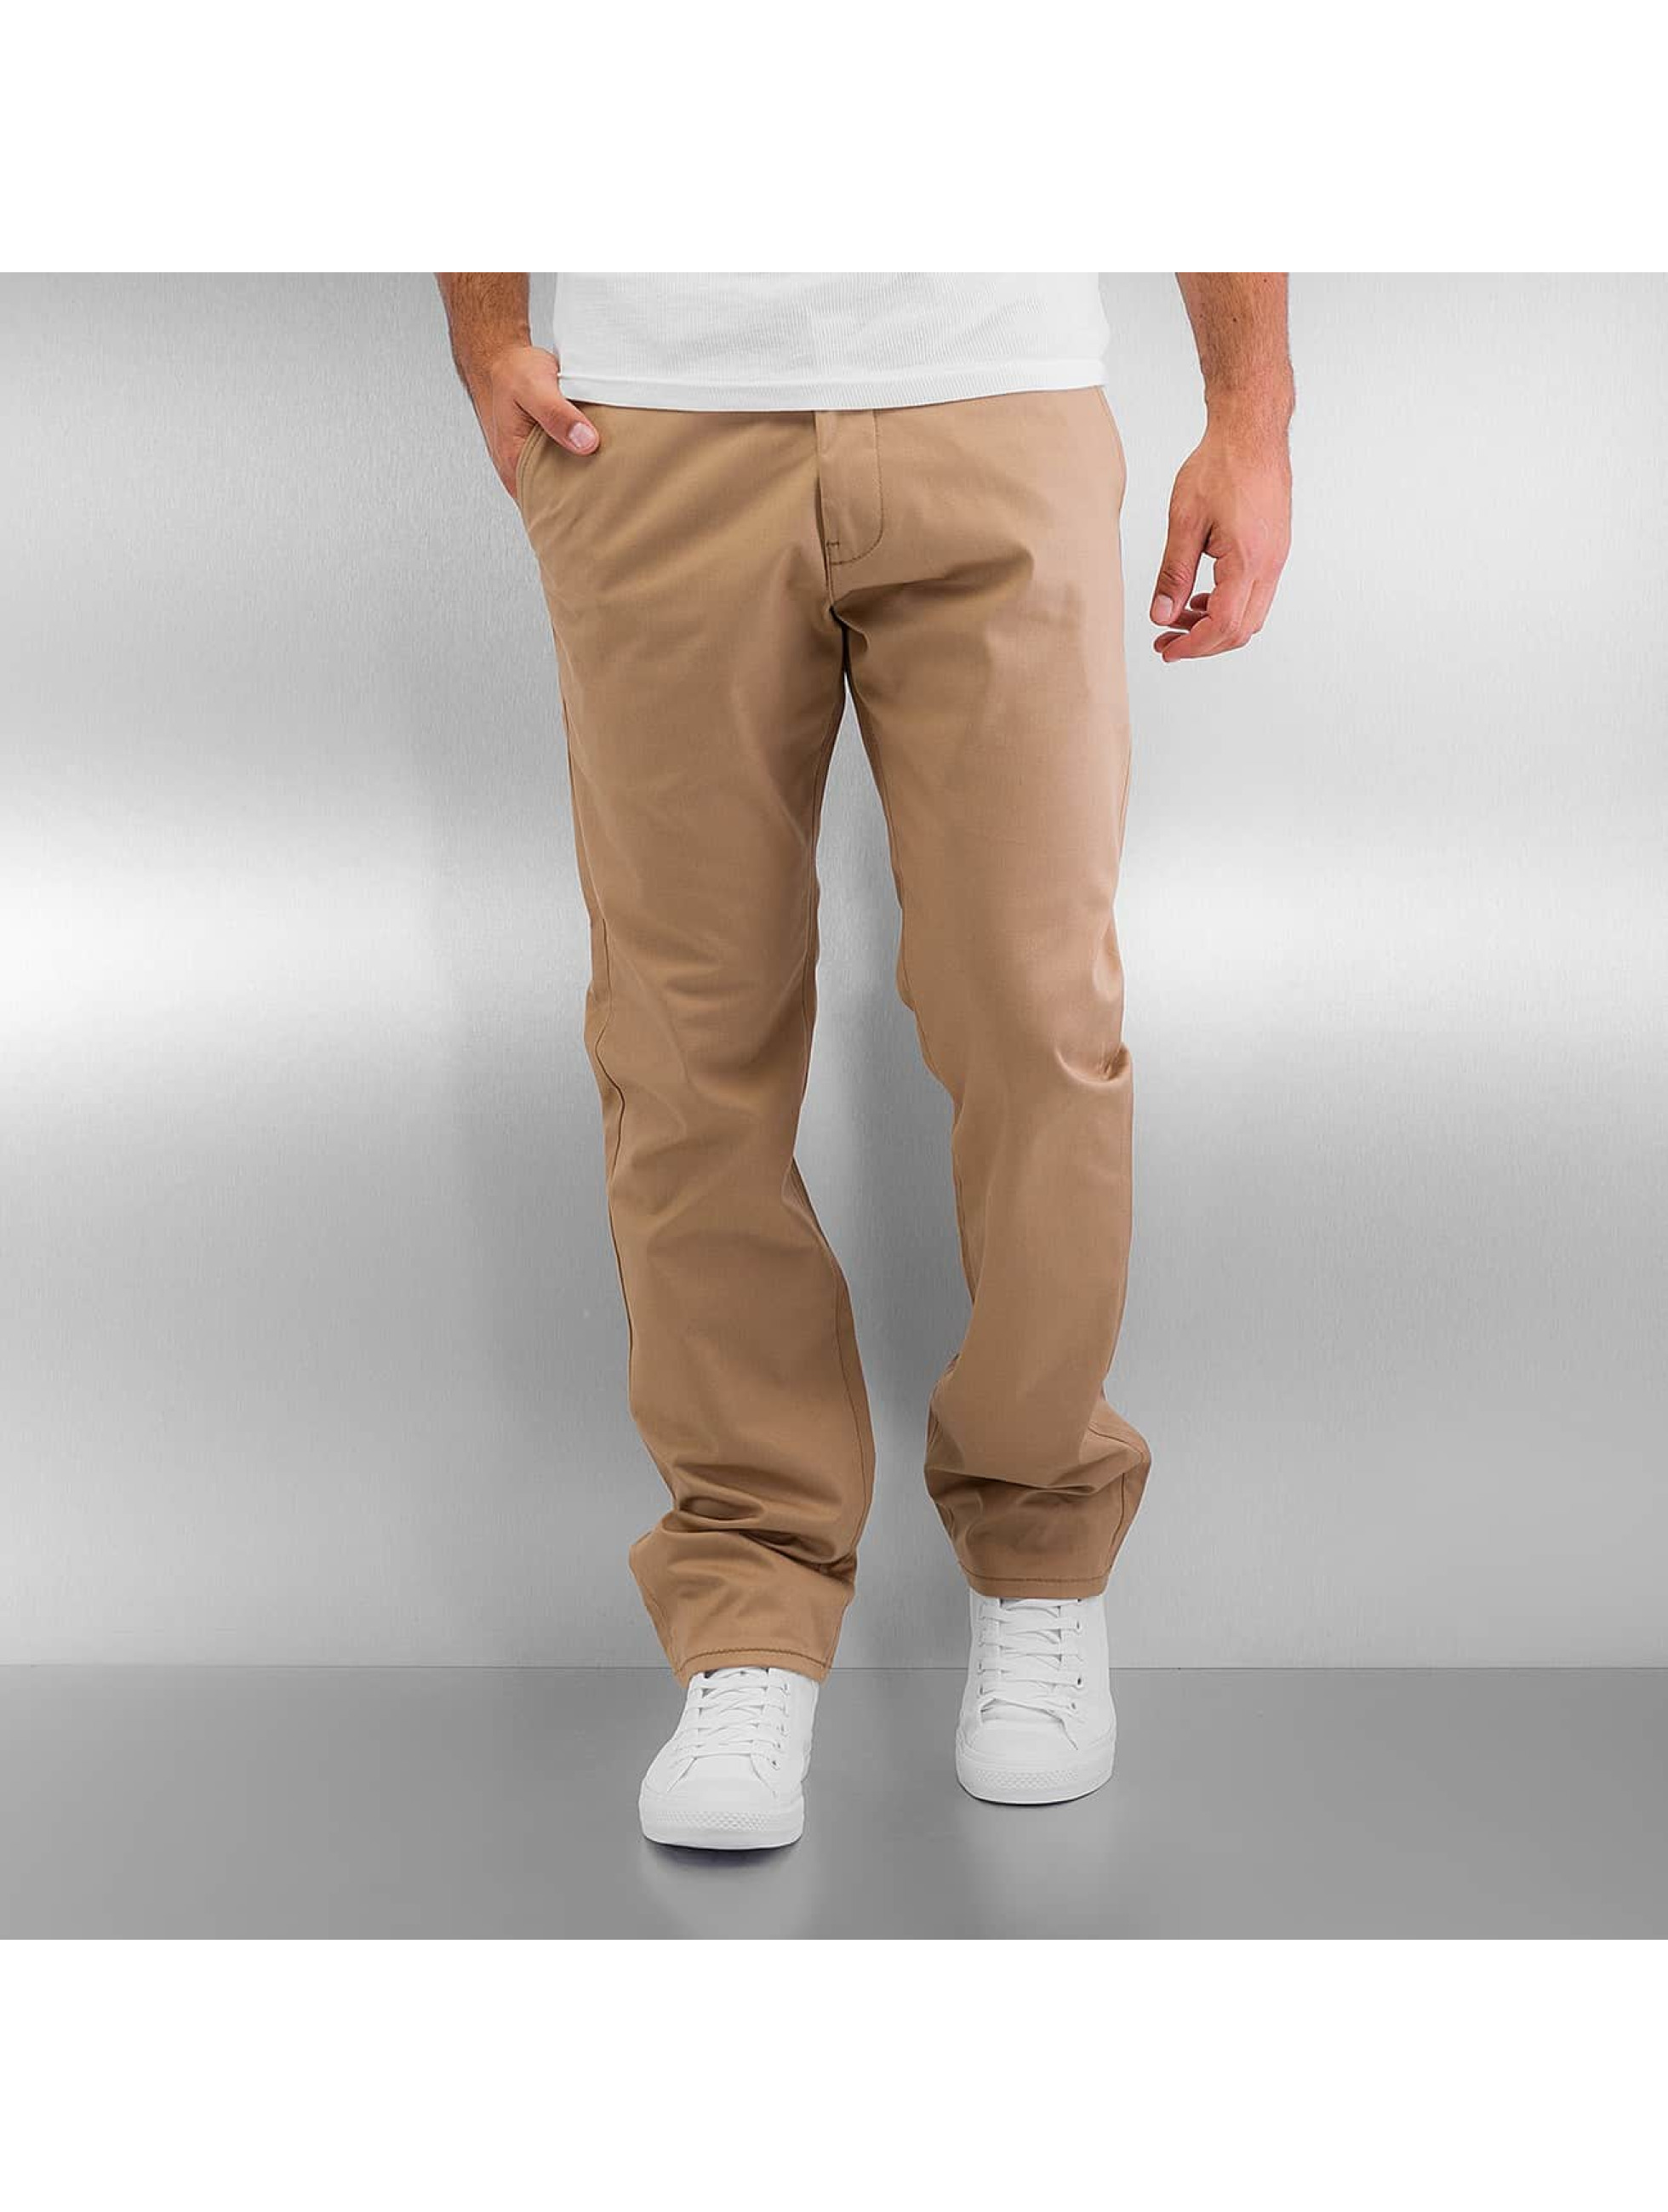 Reell Jeans Männer Chino Straight Flex in beige